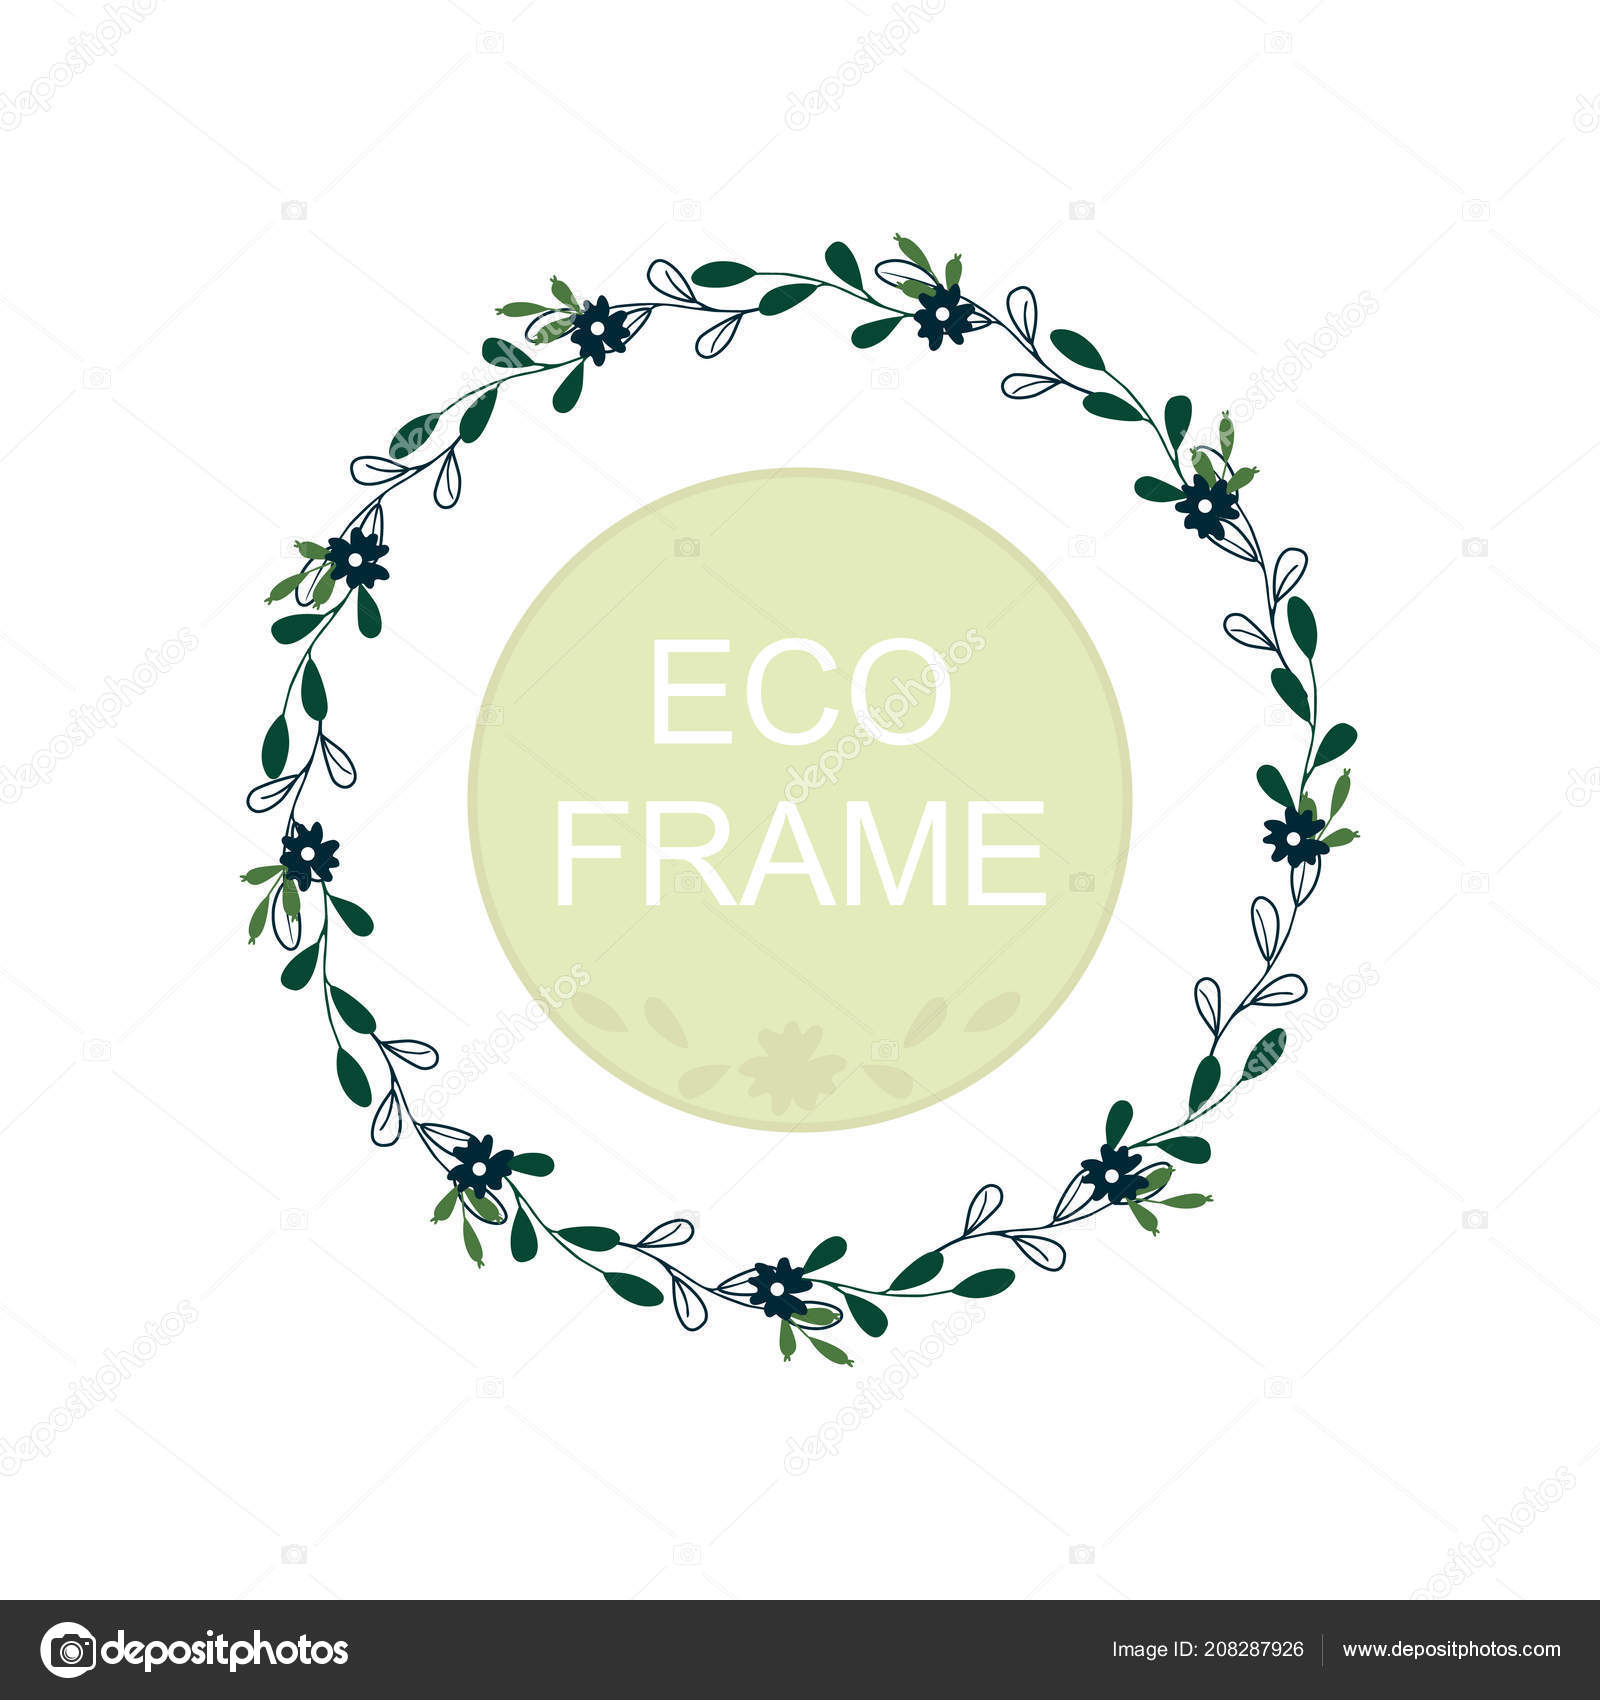 Eco frame wreath greeting card design wedding invitations logos eco frame wreath greeting card design wedding invitations logos business stock vector m4hsunfo